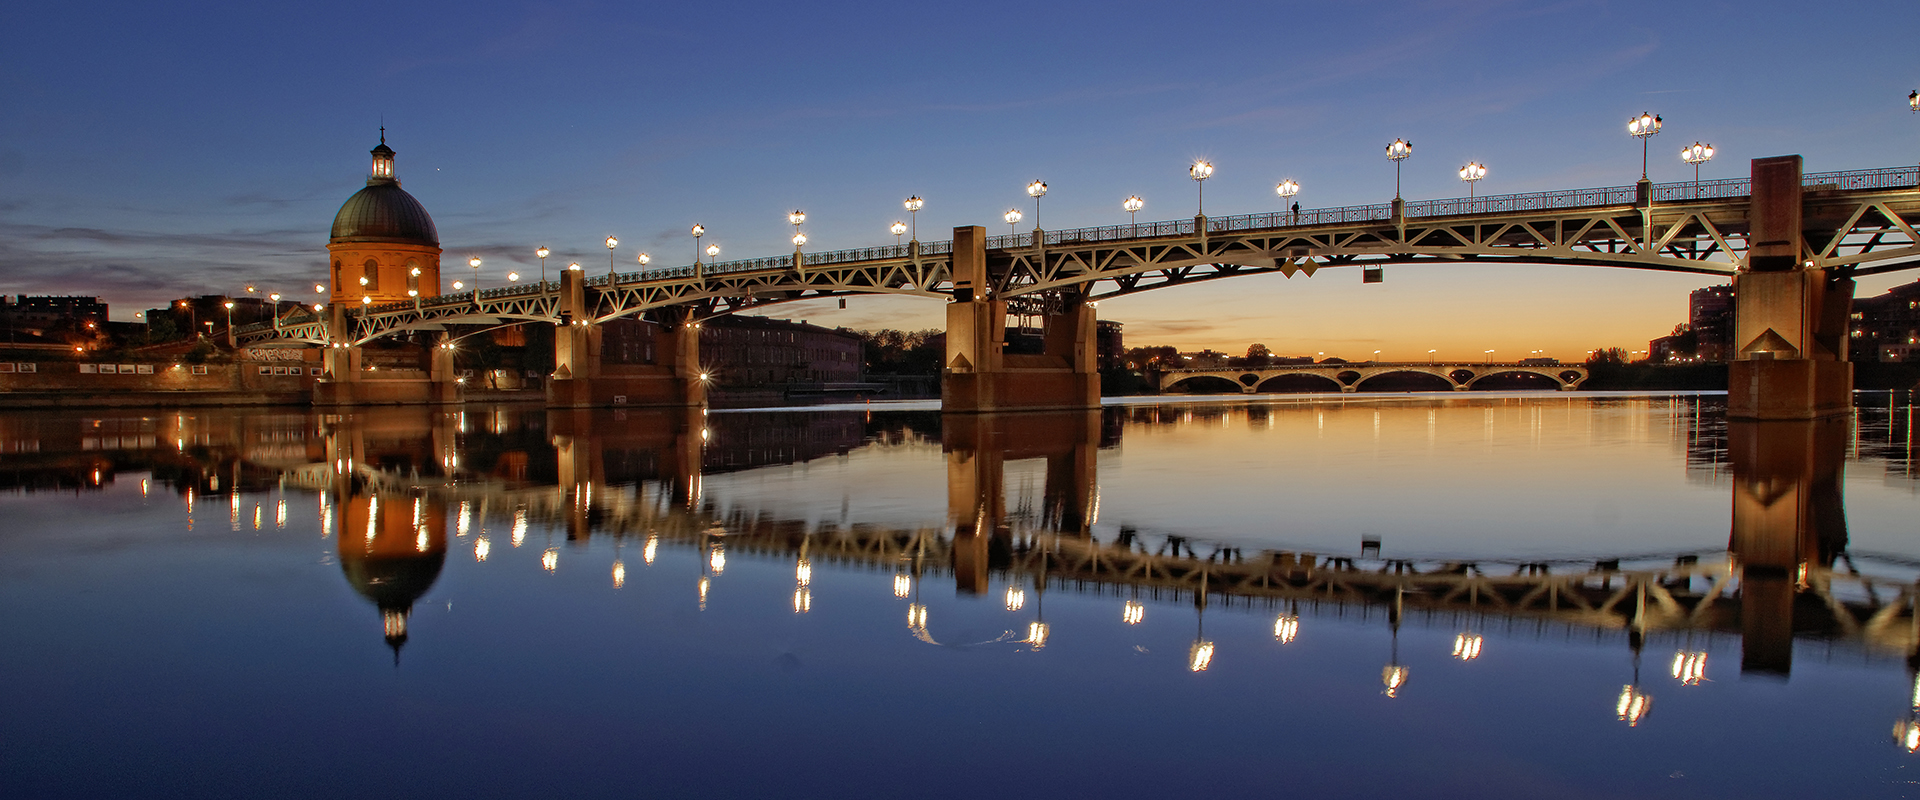 Guide de Voyage Toulouse | Toulouse | Aegean Airlines: https://fr.aegeanair.com/decouvrir/destinations/toulouse/